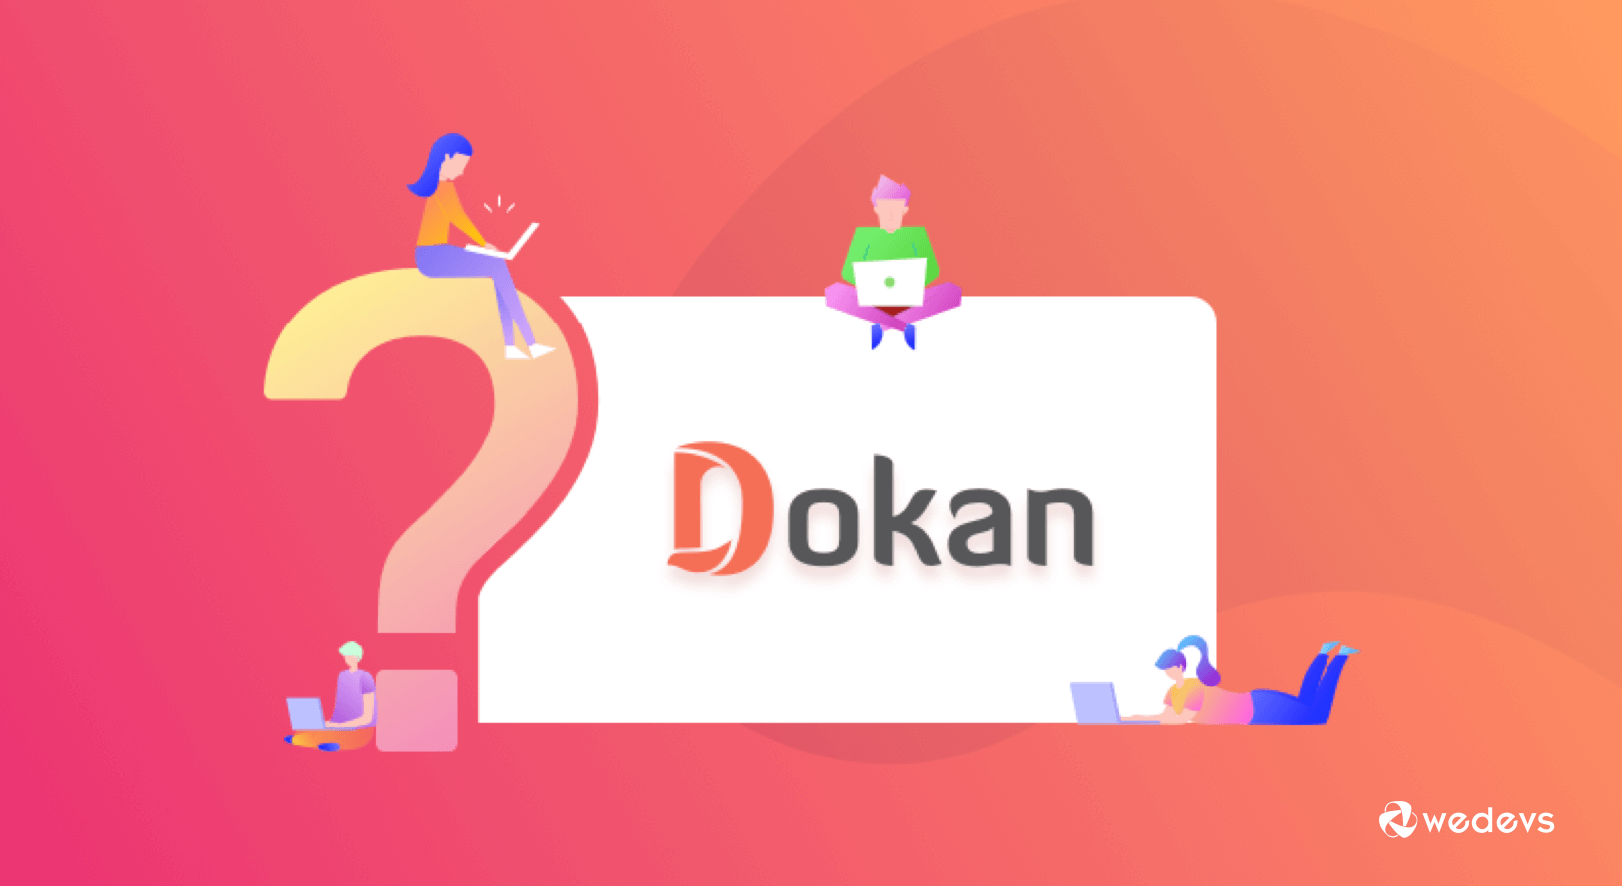 Questions You May Have on Your Mind about Dokan (FAQ)